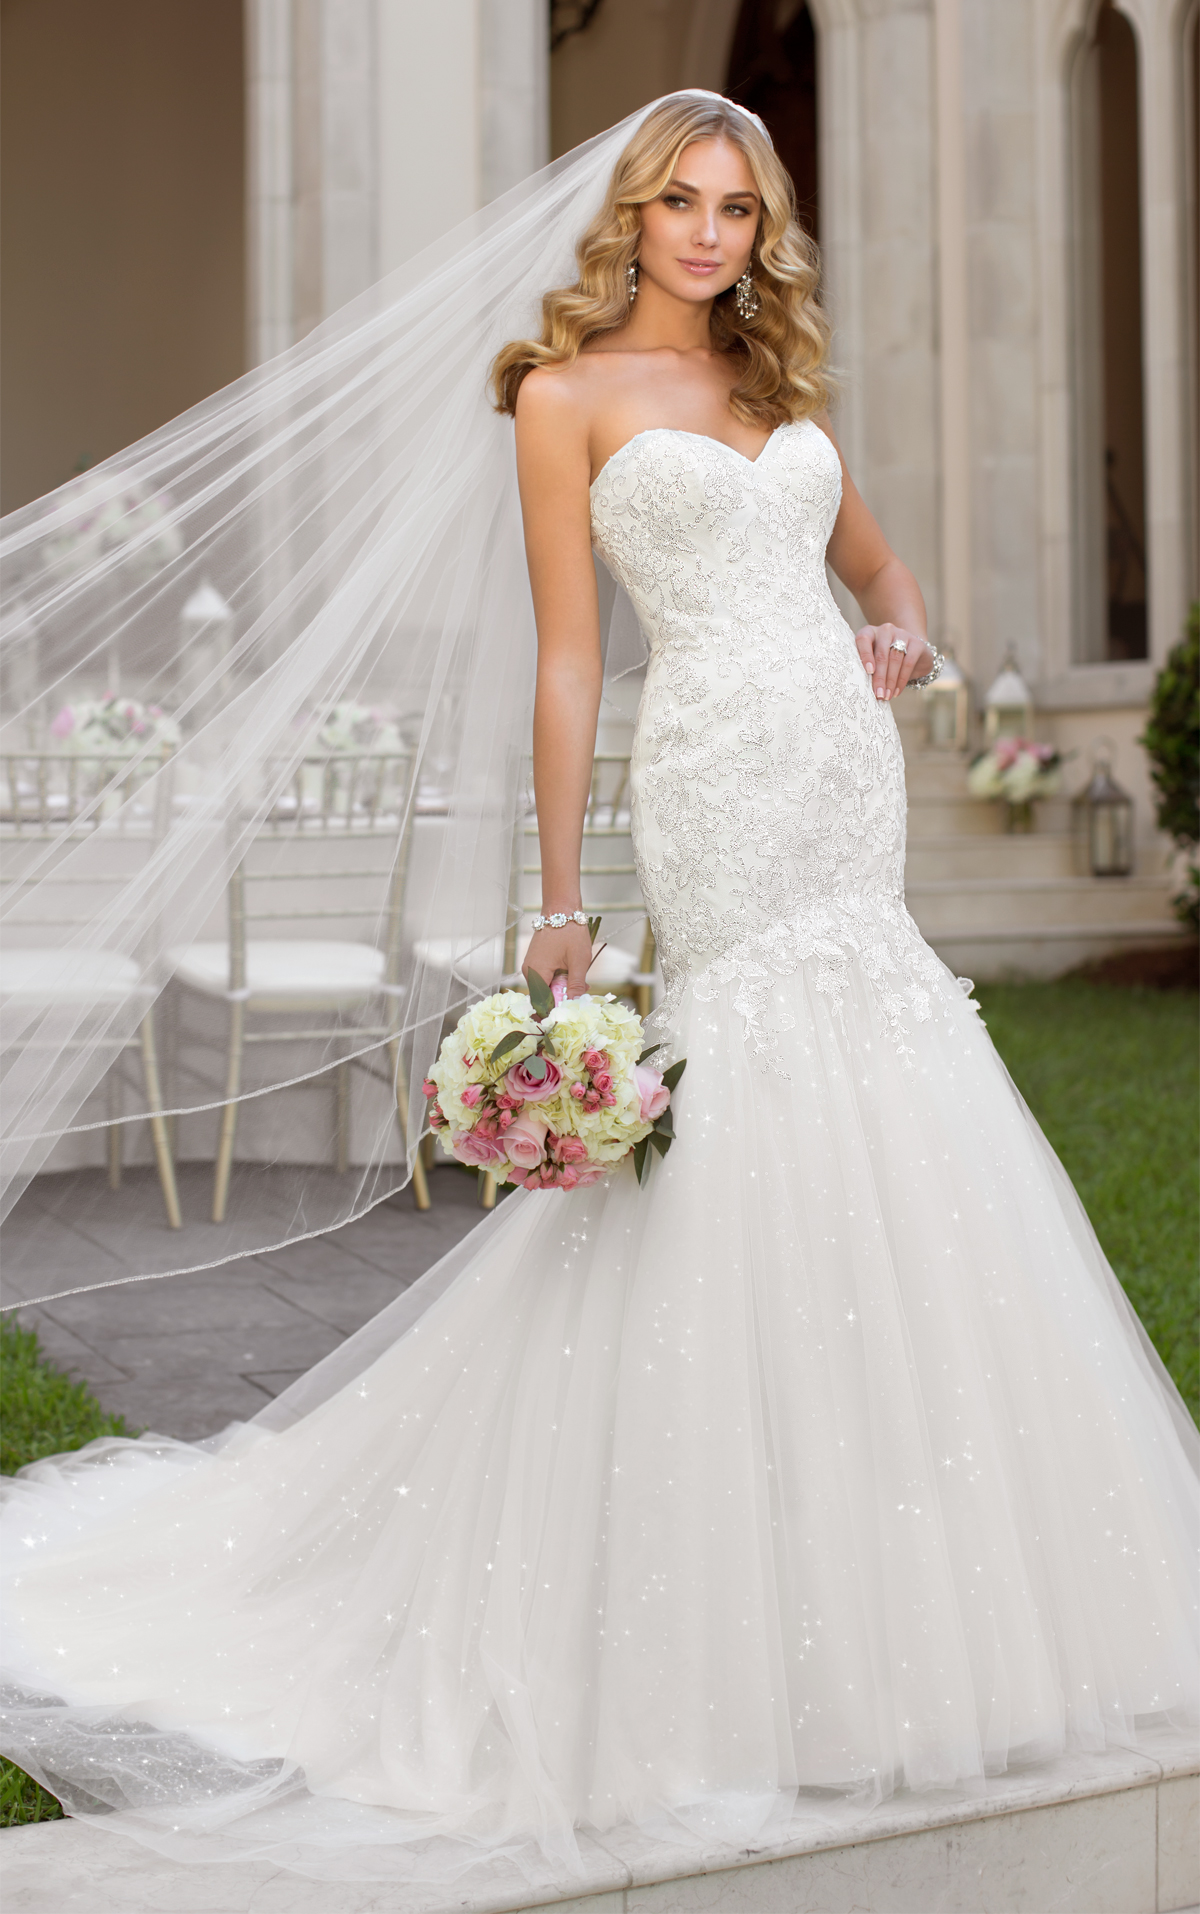 stella-york-wedding-dresses-2014-11-01162014